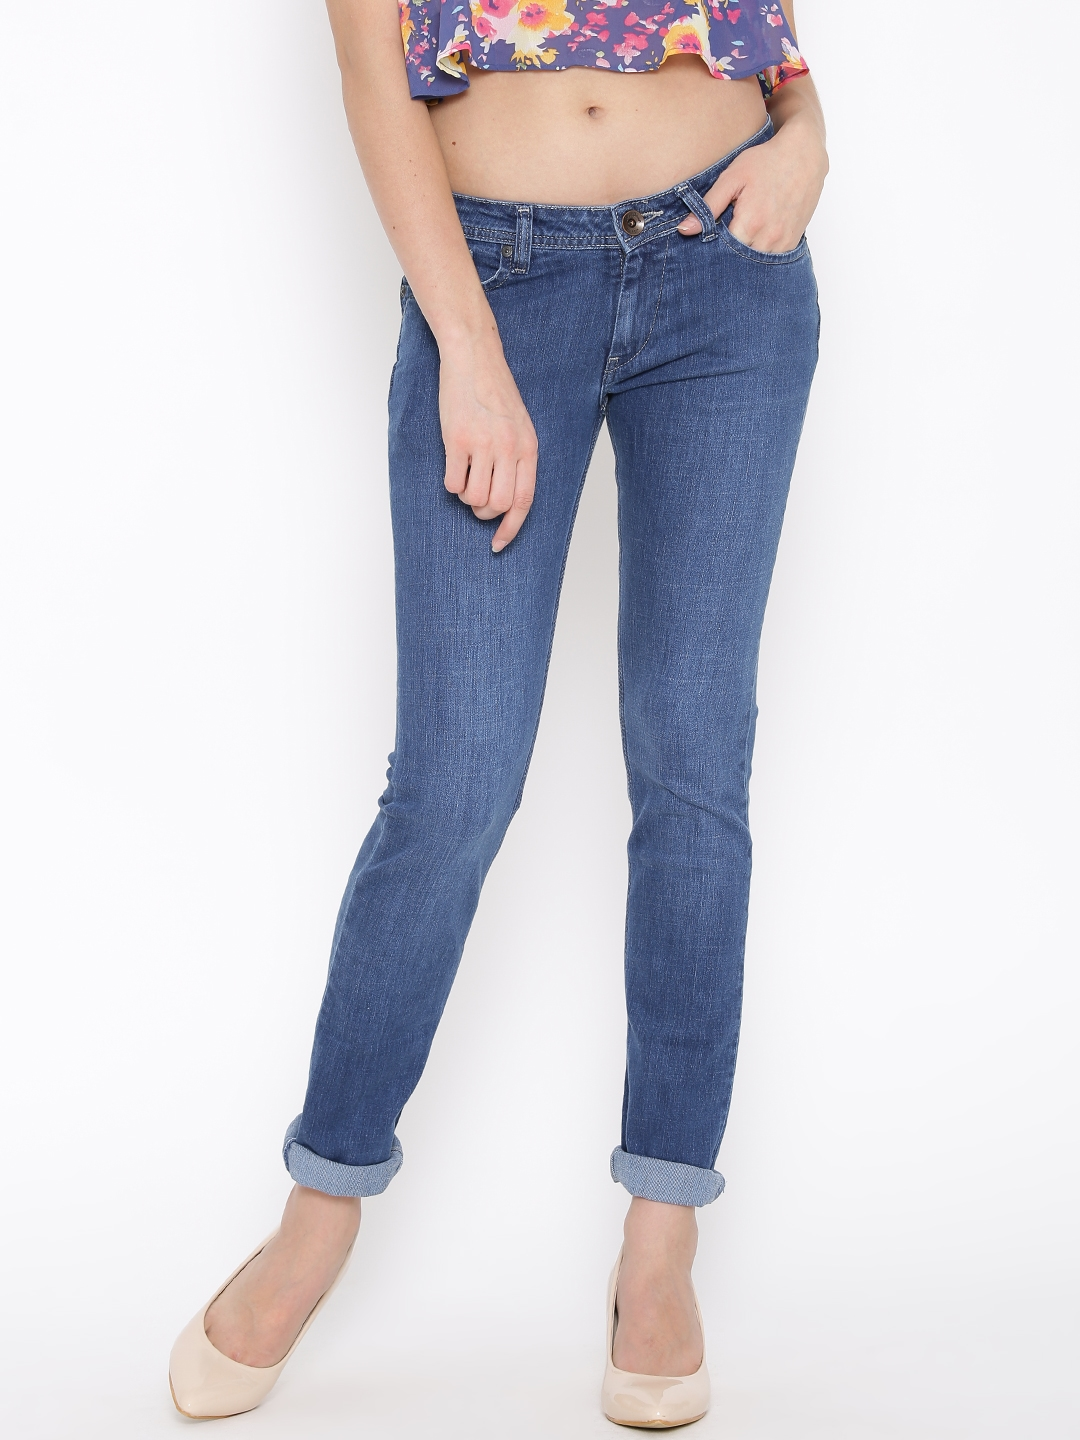 afaee3db5ee Buy Pepe Jeans Blue Frisky Slim Fit Jeans - Jeans for Women 1324788 ...